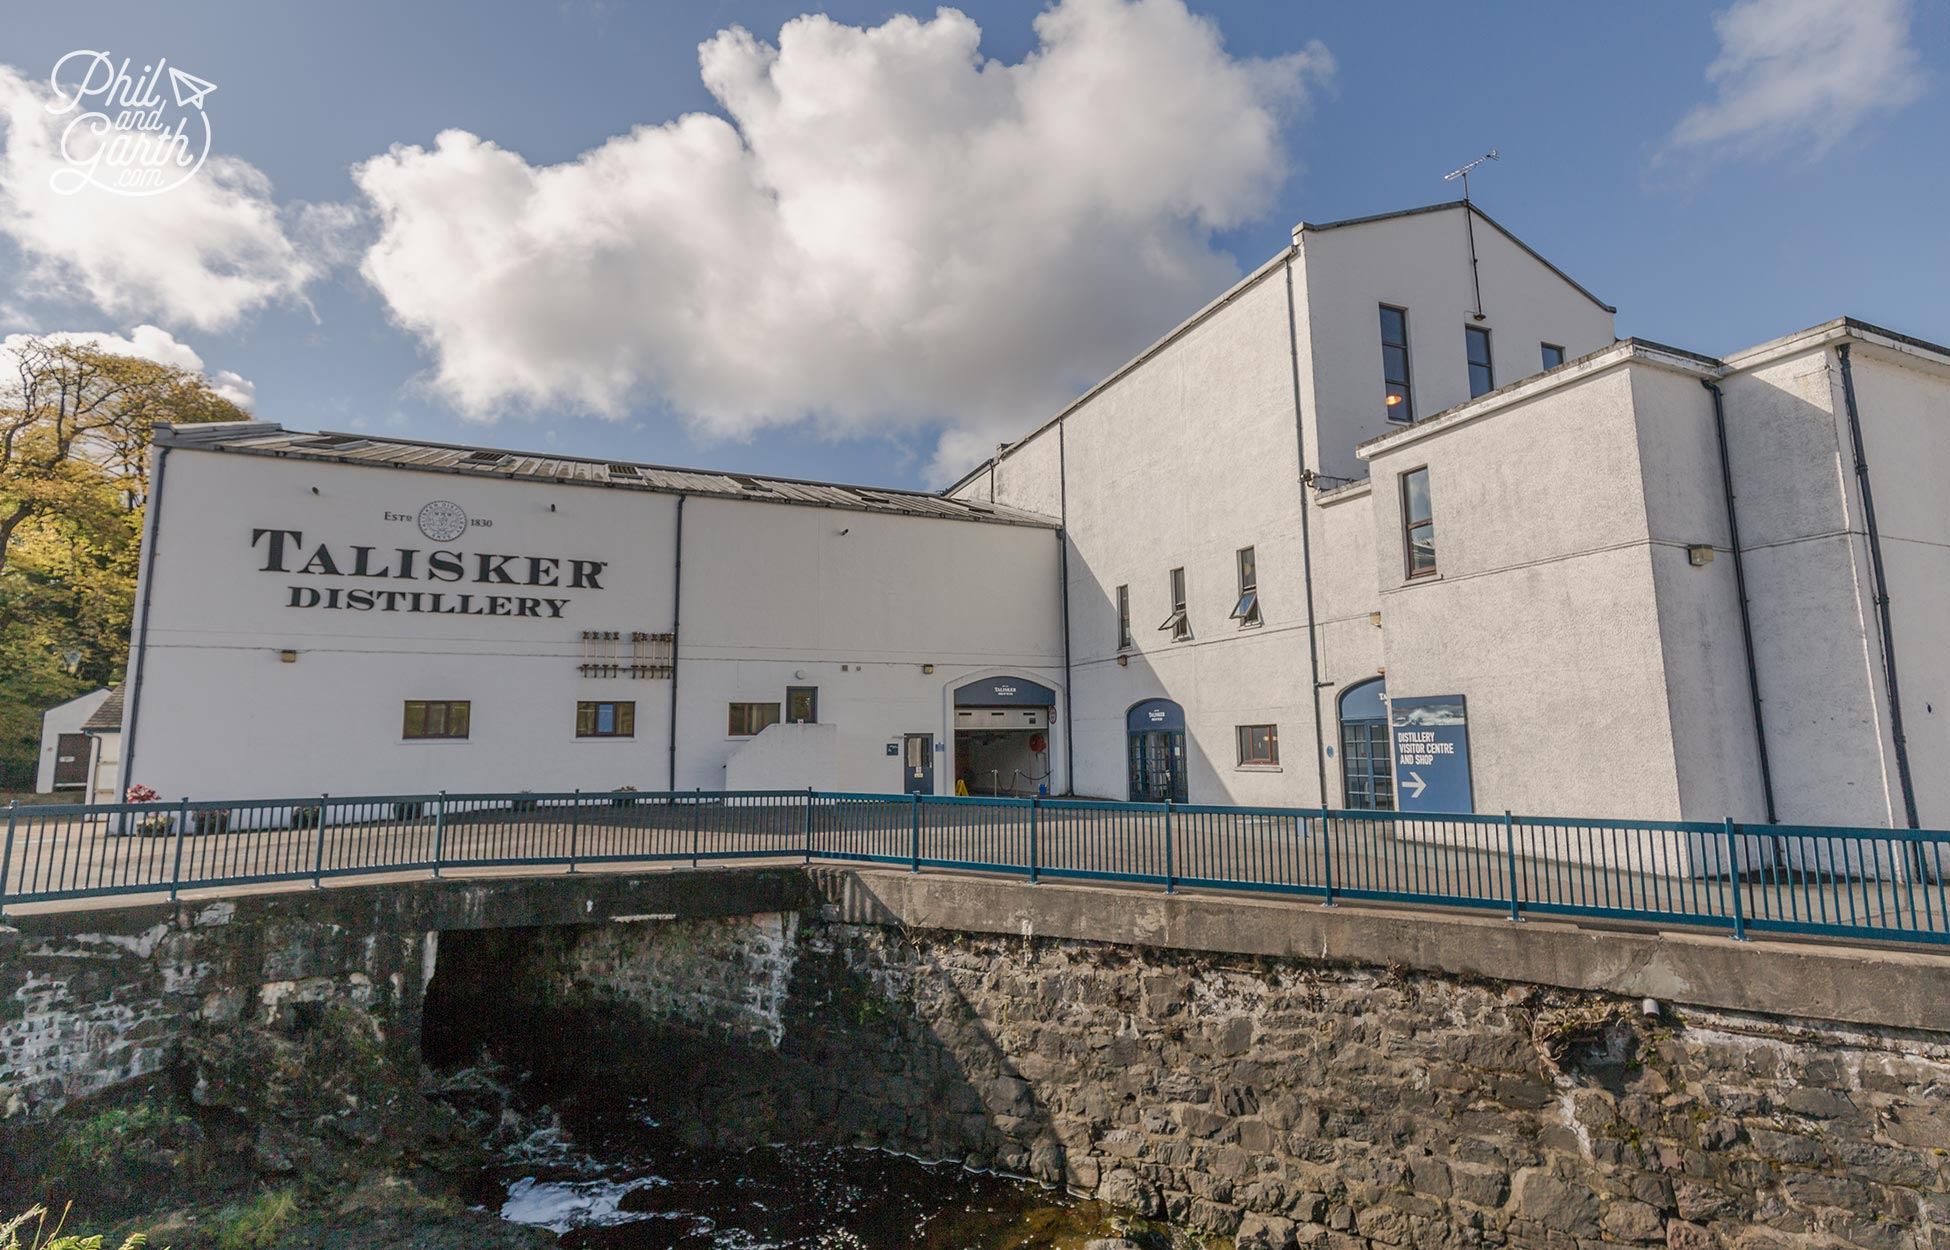 The Talisker Distillery Isle of Skye